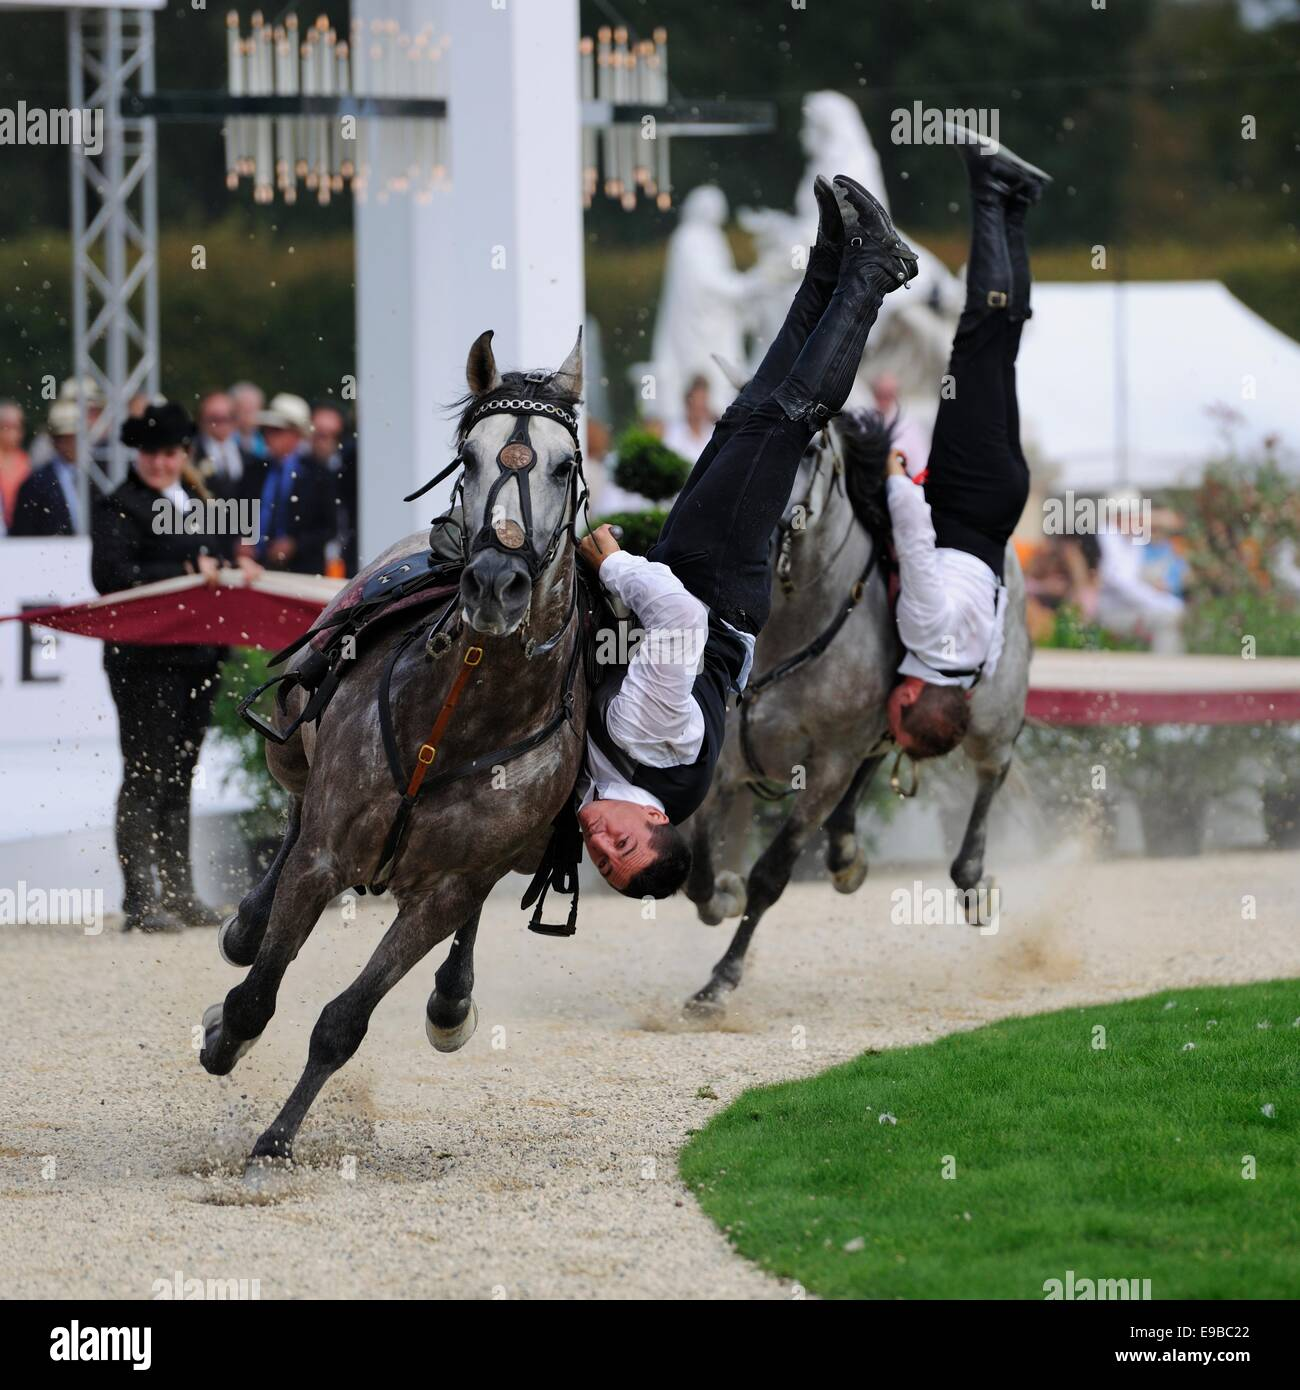 stunt horse riders performing at an outdoor event - Stock Image